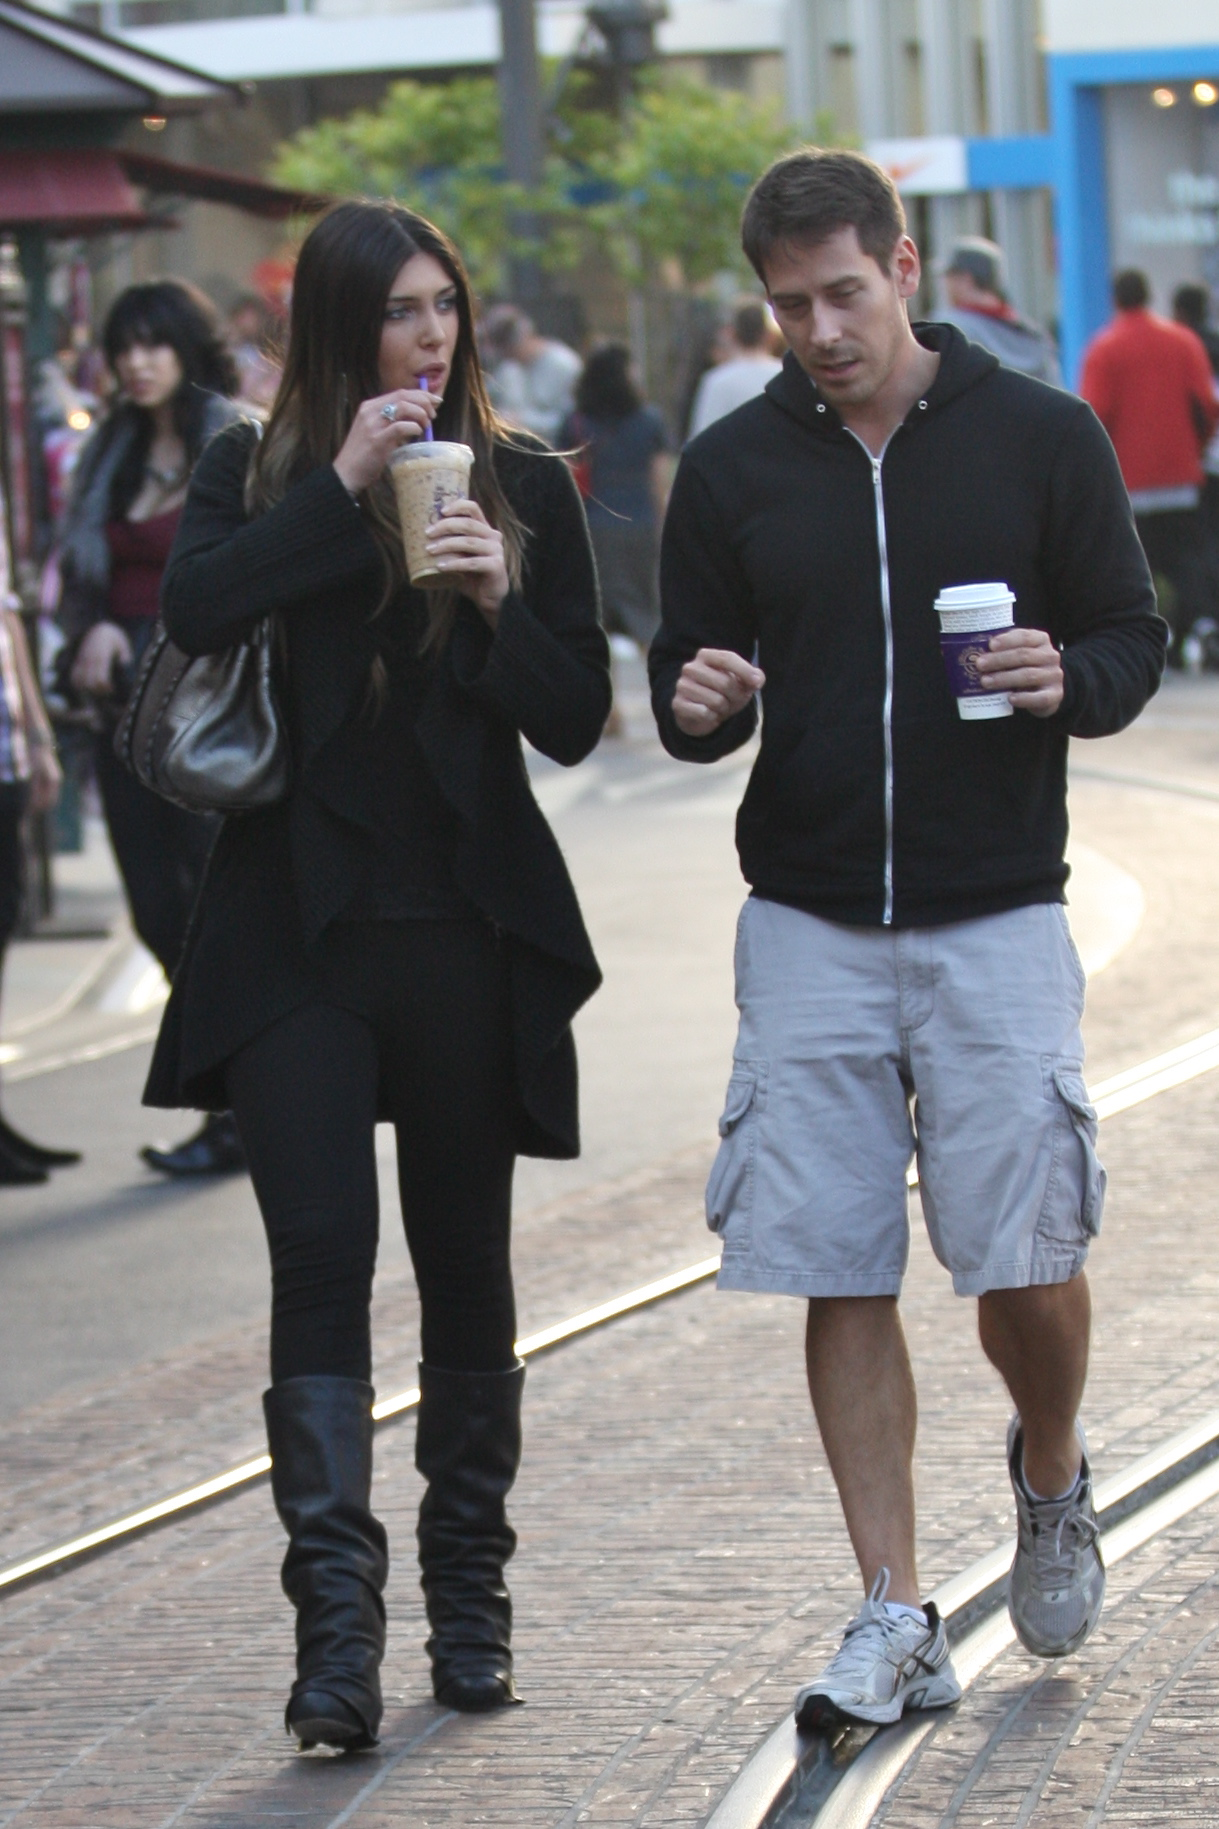 24891_celebrity-paradise.com-The_Elder-Brittny_Gastineau_2010-01-31_-_out_shopping_in_Hollywood_622_122_234lo.jpg